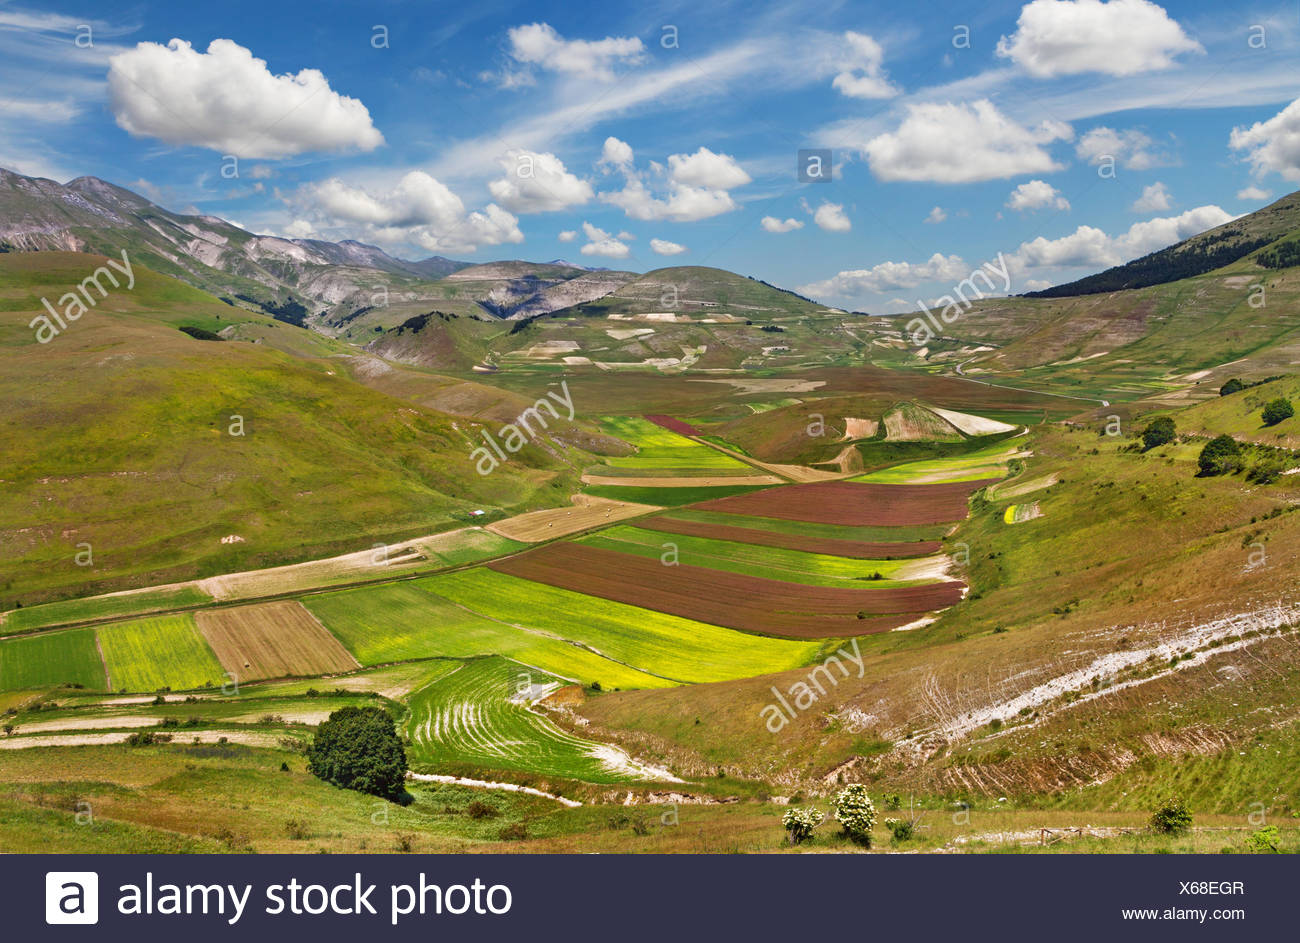 Natural park of Monti Sibillini. Italy - Stock Image